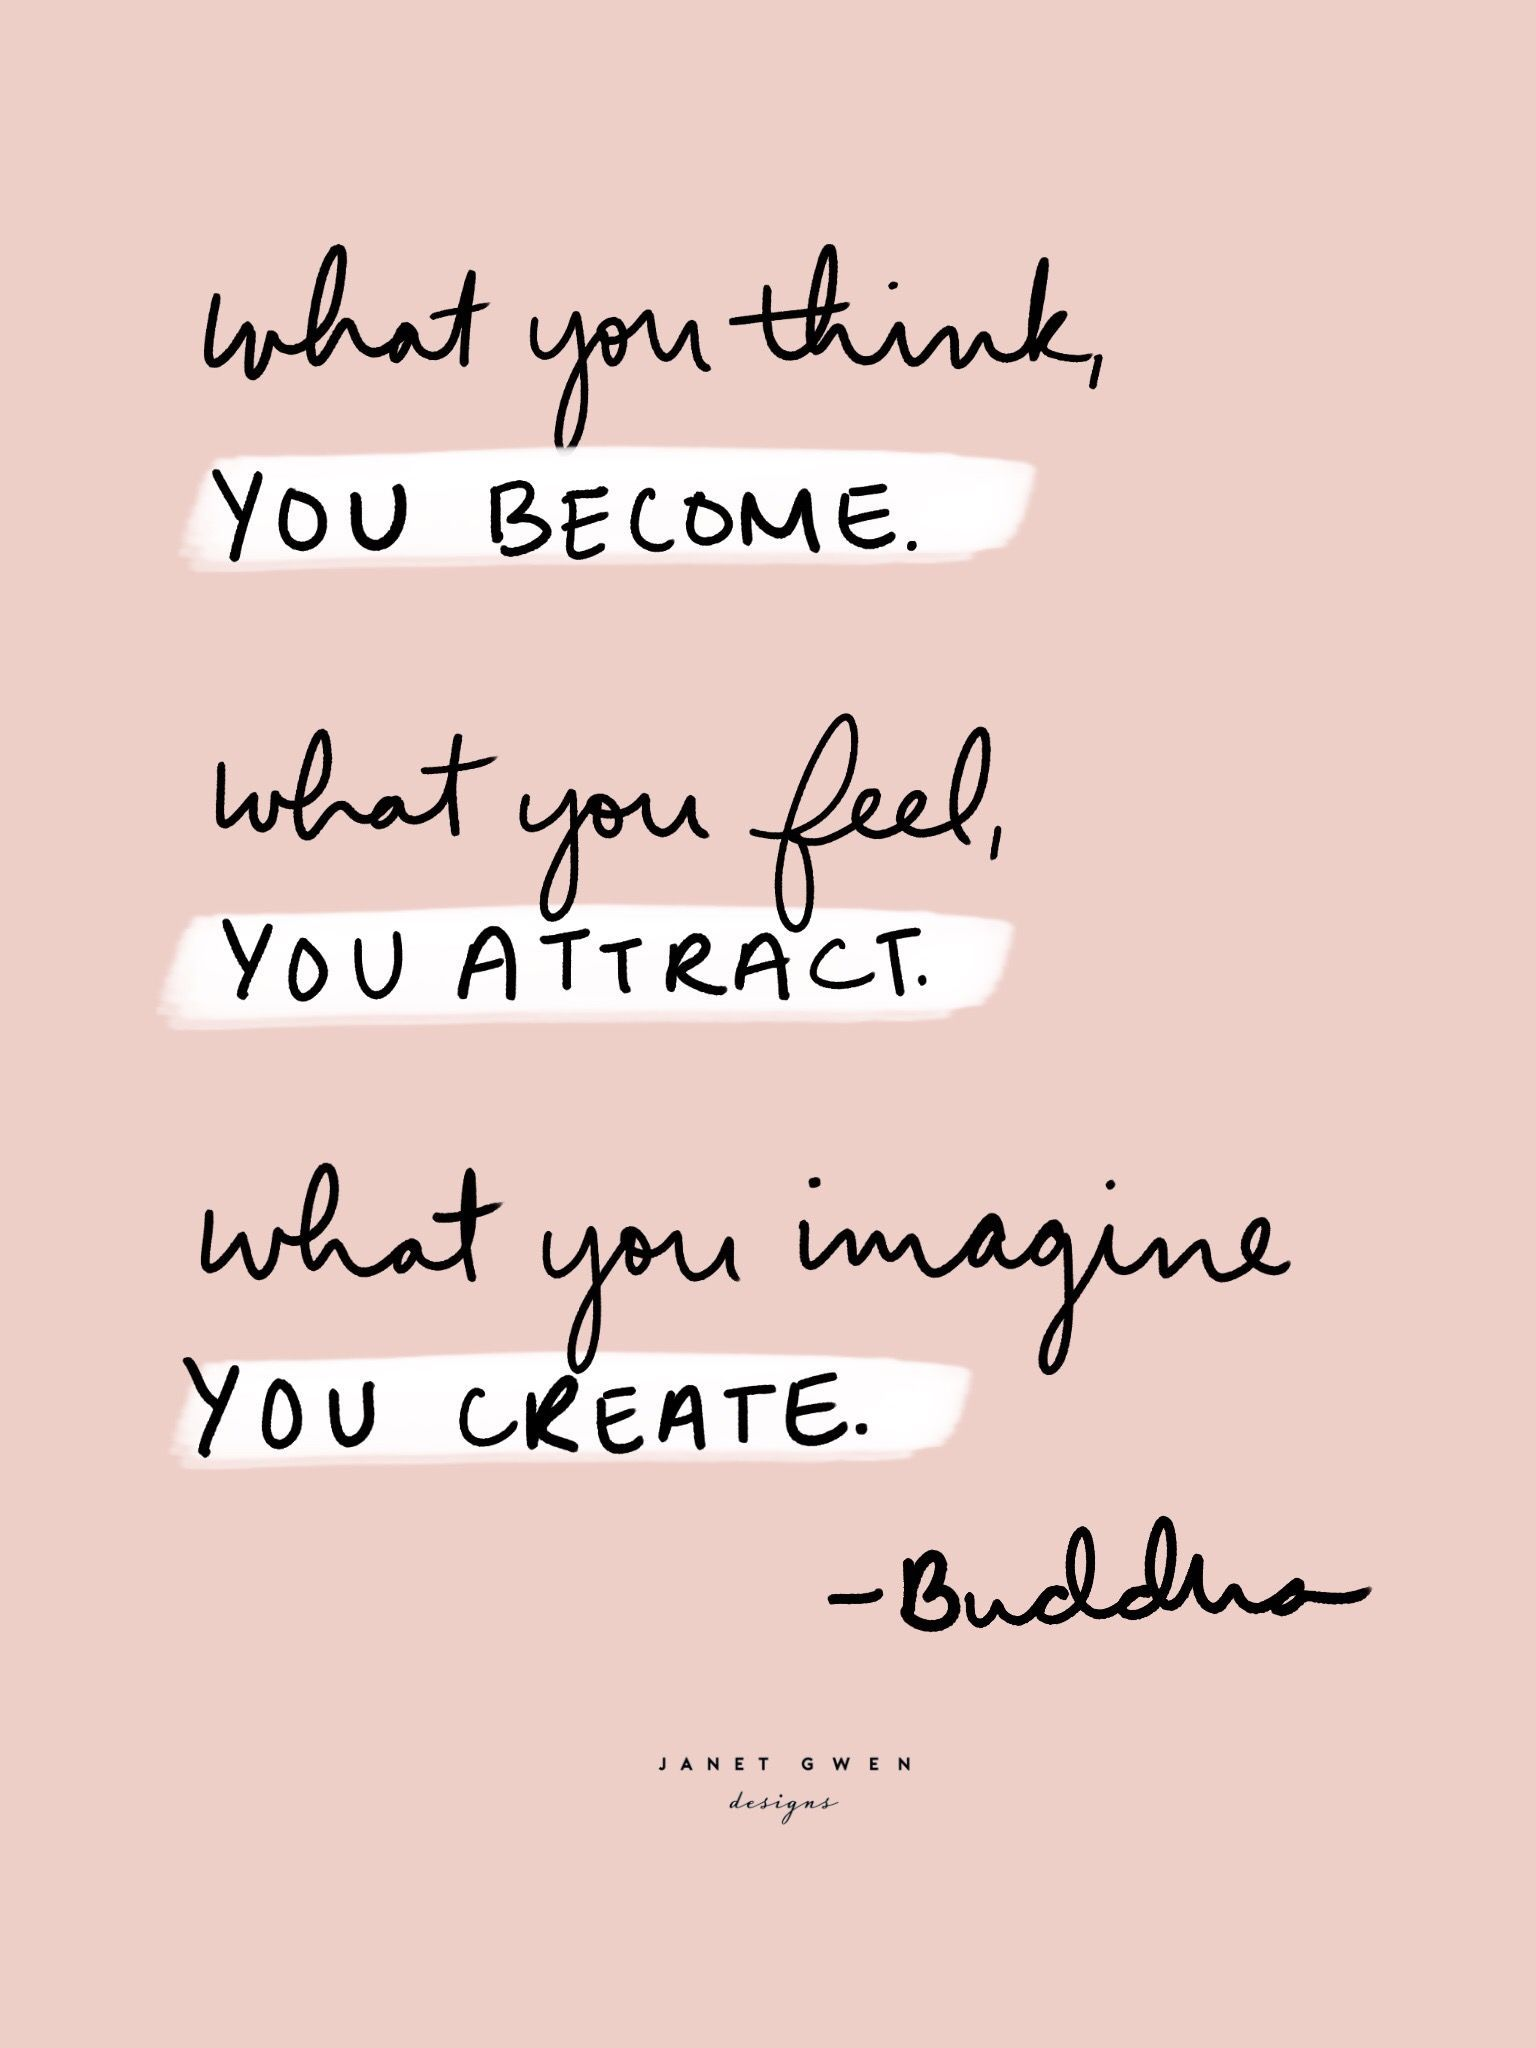 You Become You Attract You Create Buddha Quotes Rose And Marble